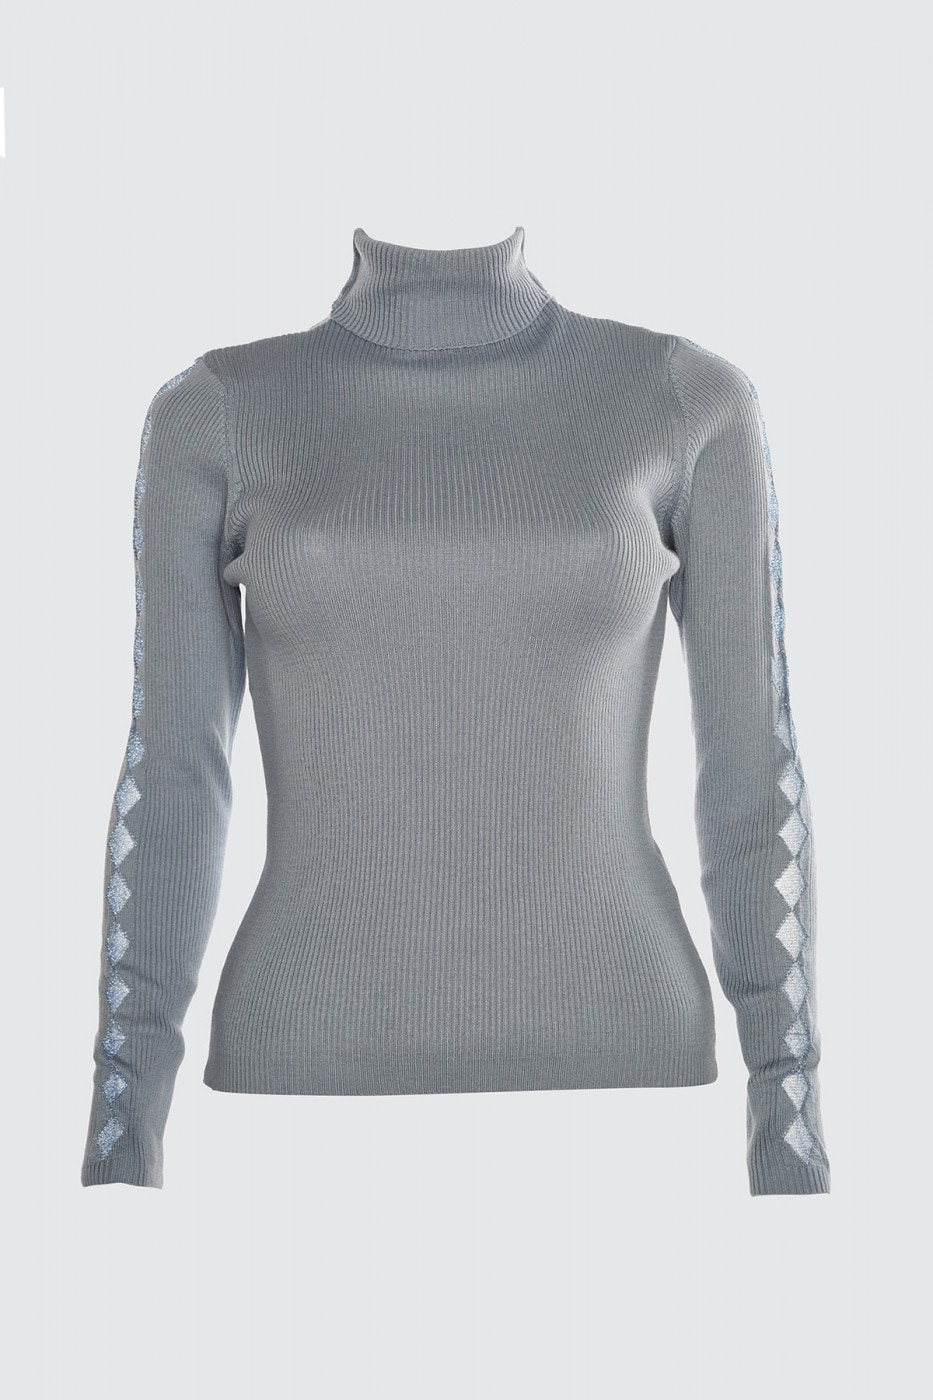 Trendyol Blue Sleeves Transparent Detailed Knitwear Sweater